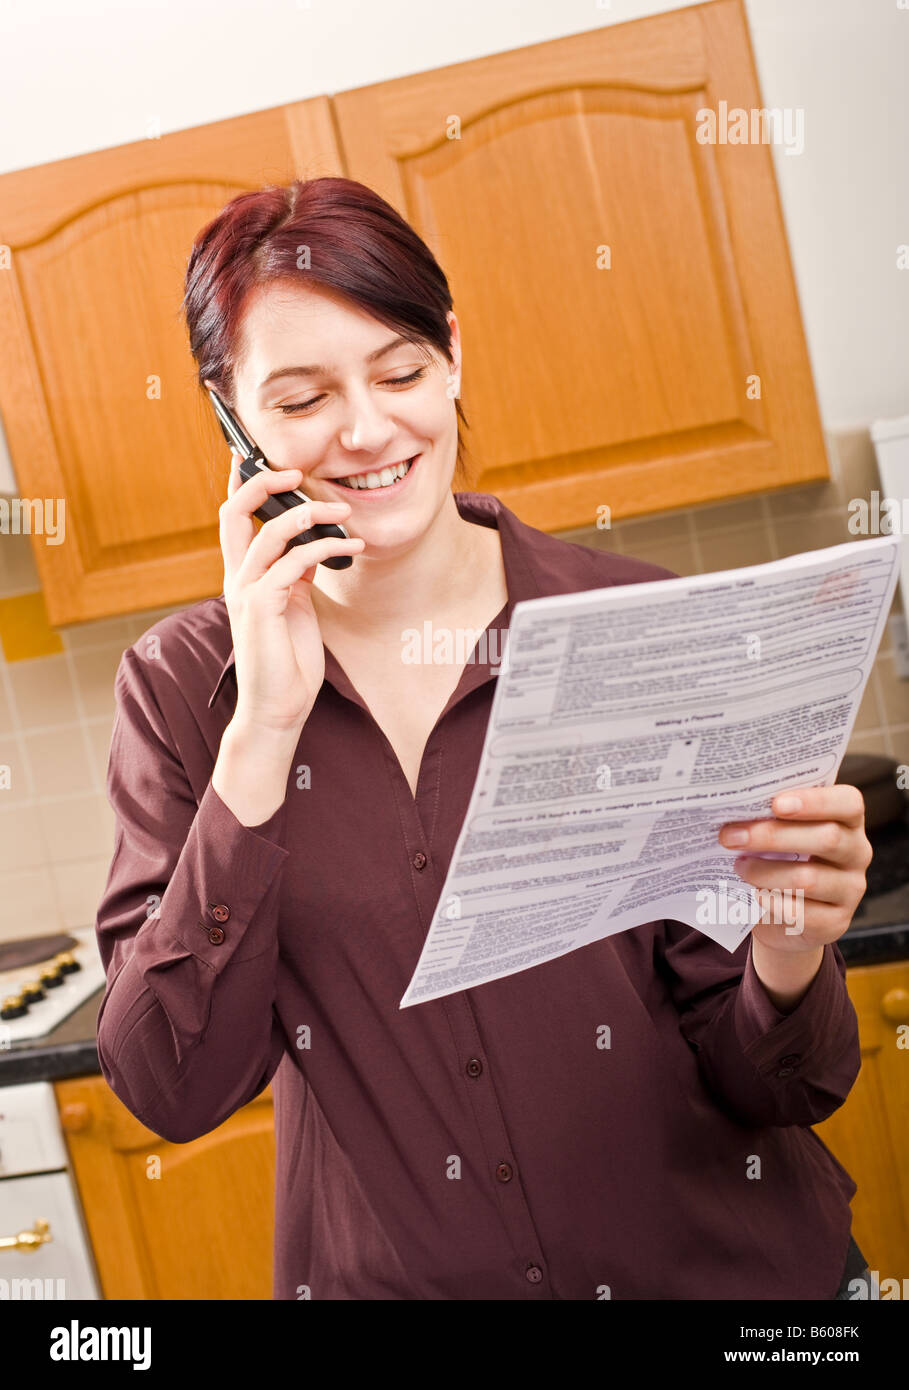 Young woman paying a bill using her mobile phone and smiling MR PR - Stock Image